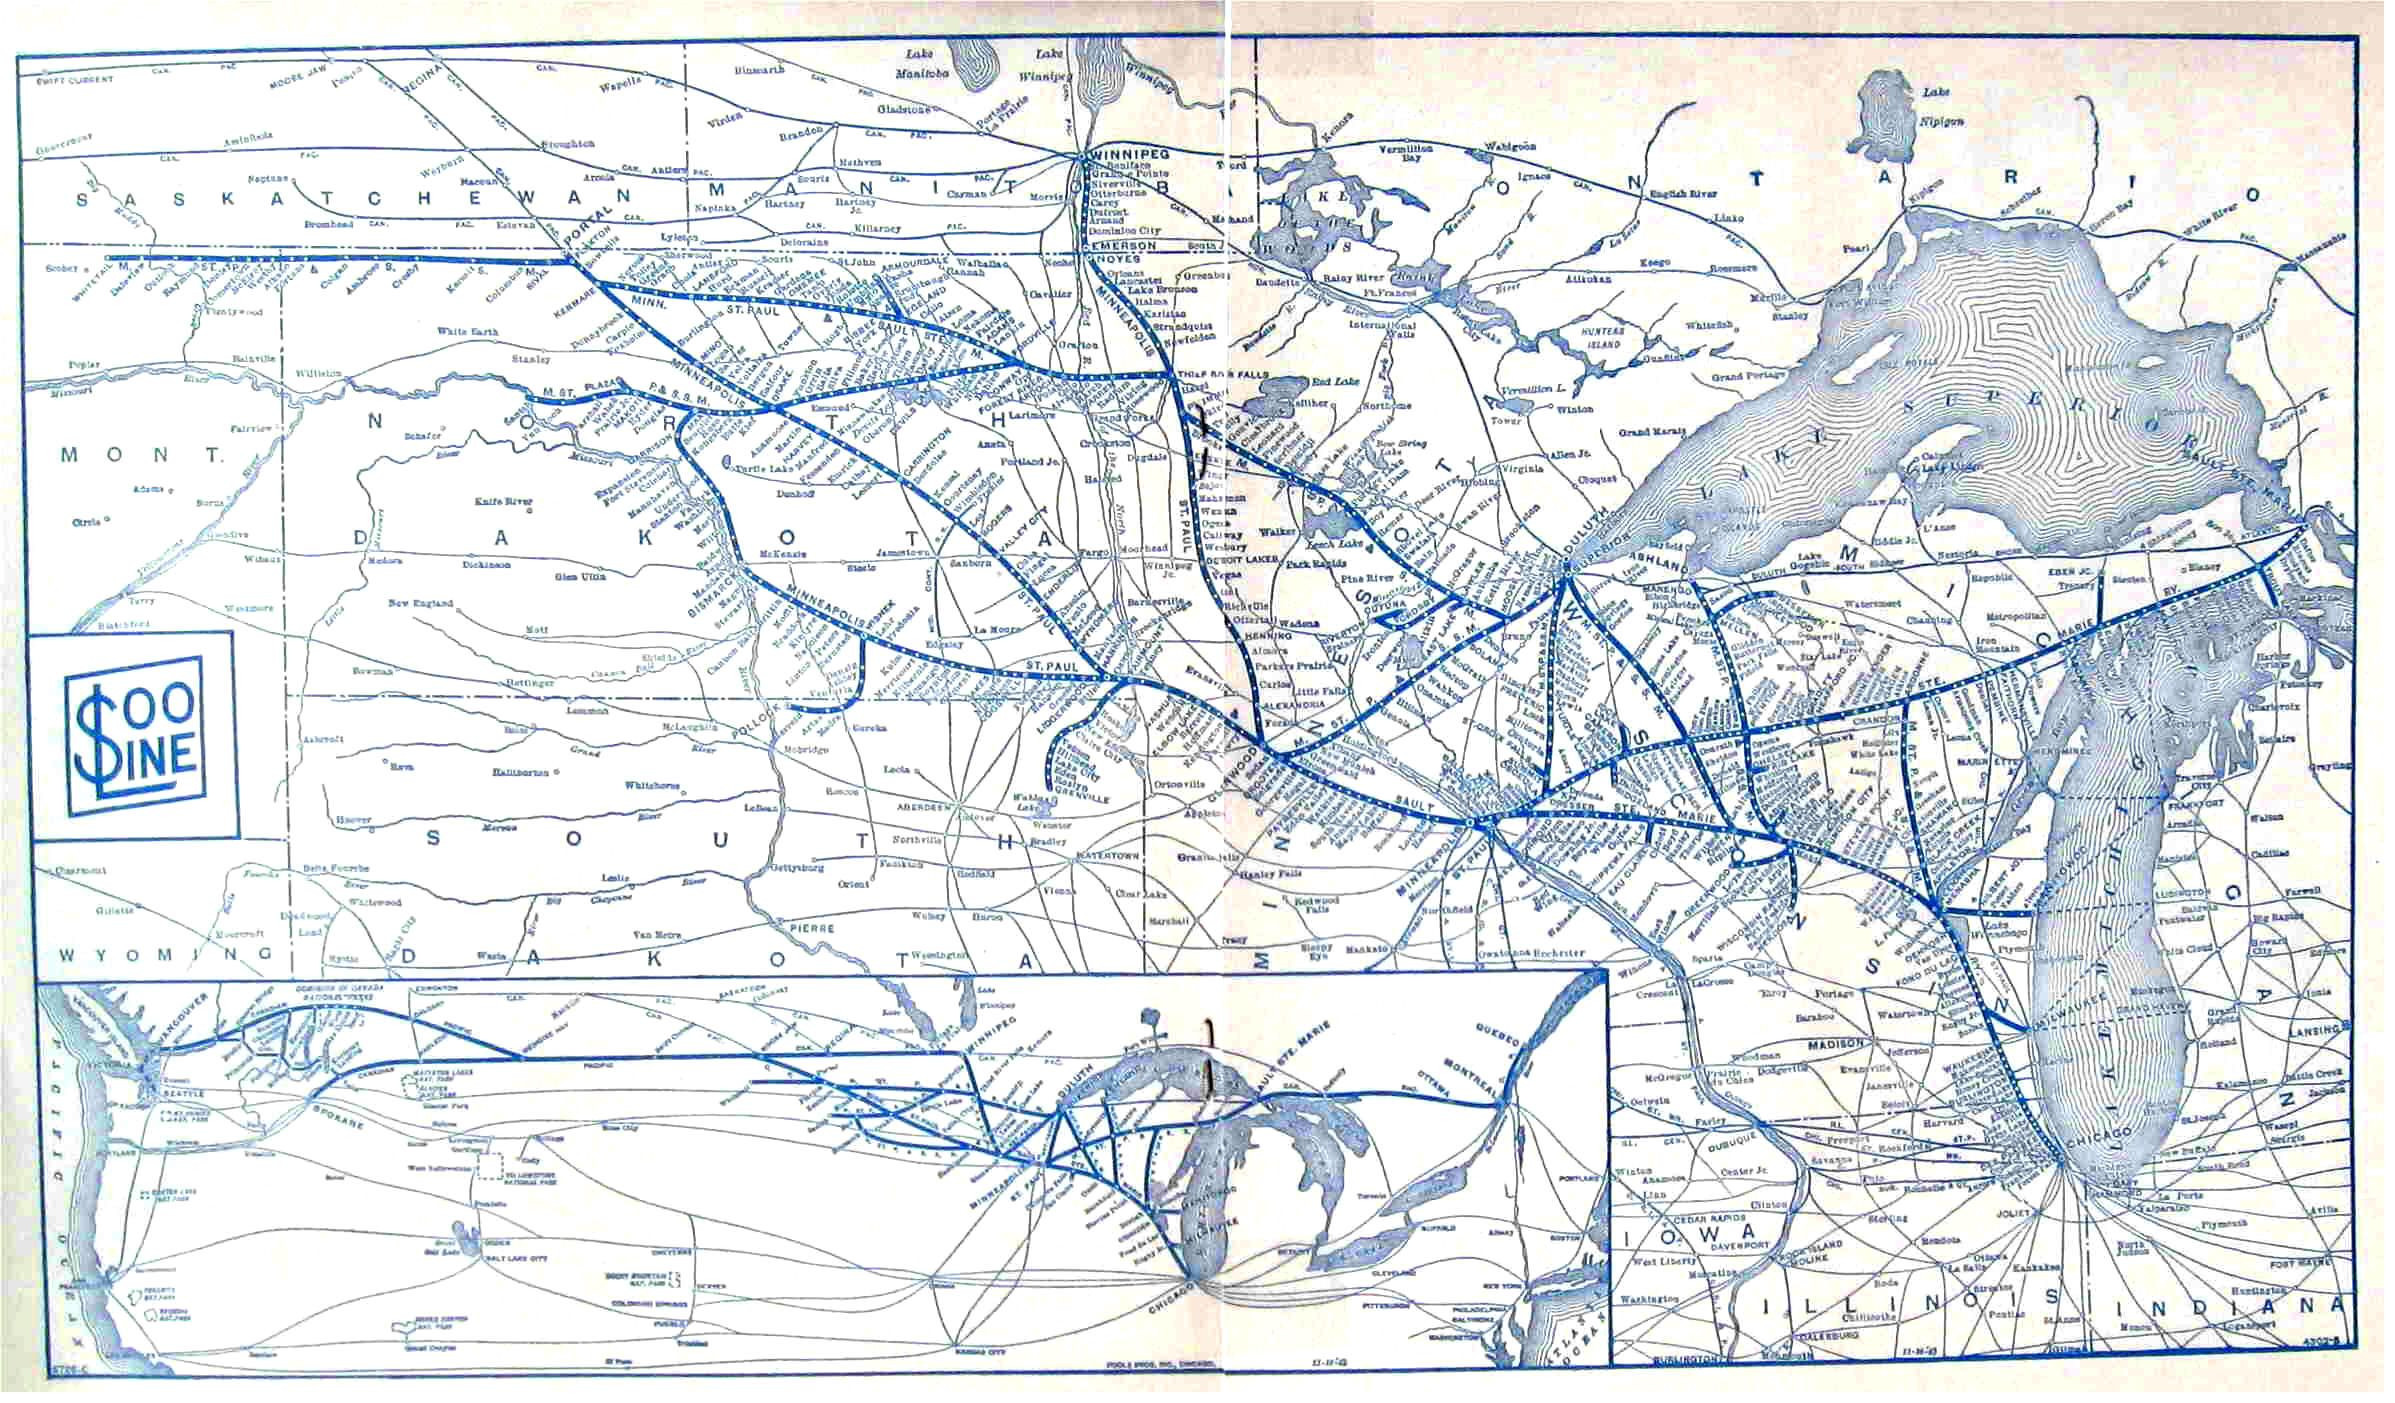 Soo Line map 1947, (pre Milwaukee Road) | Milwaukee road ... Milwaukee Road Route Map Minnesota on wheeling & lake erie route map, union pacific route map, virginia & truckee route map, chicago great western route map, united route map, grand trunk route map, milwaukee railroad lines, air canada route map, milwaukee railroad in idaho, air china route map, georgia railroad route map, soo line railroad map, strasburg railroad route map, illinois central route map, mt. shasta route map, via rail canada route map, rock island route map, iberia route map, southern railway route map, dallas area rapid transit route map,